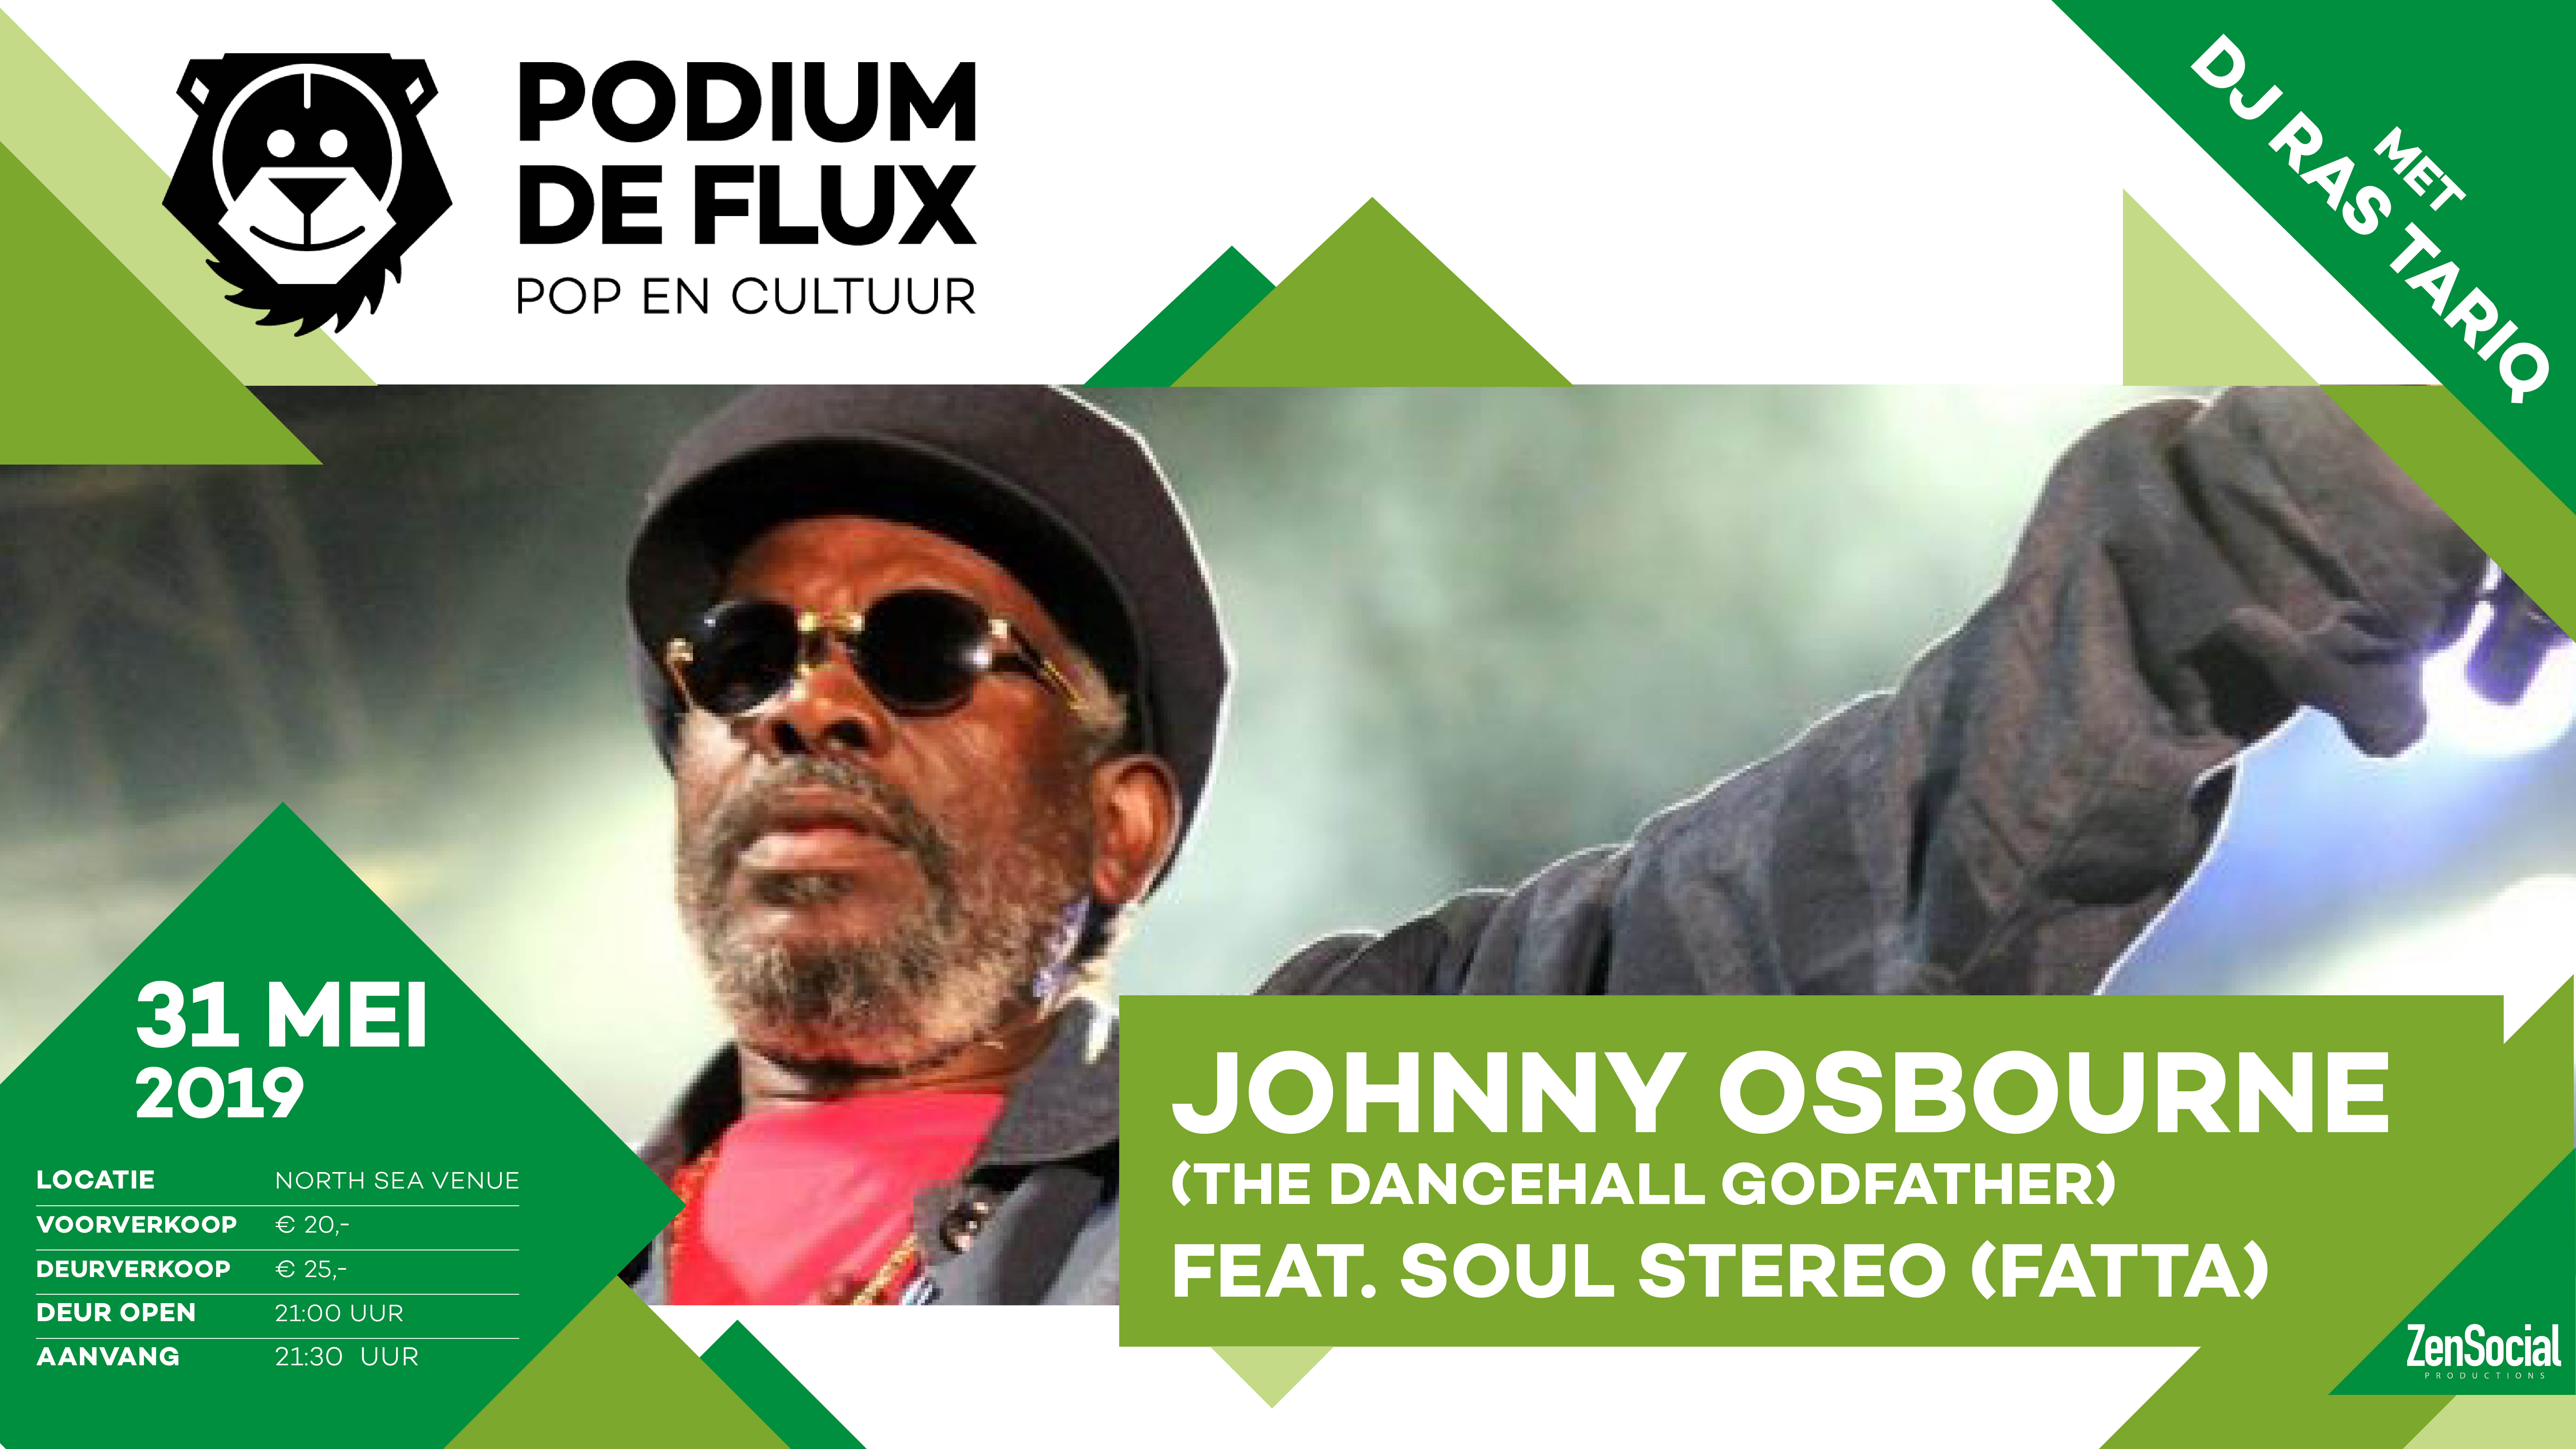 Johnny Osbourne & Soul Stereo|Podium de Flux